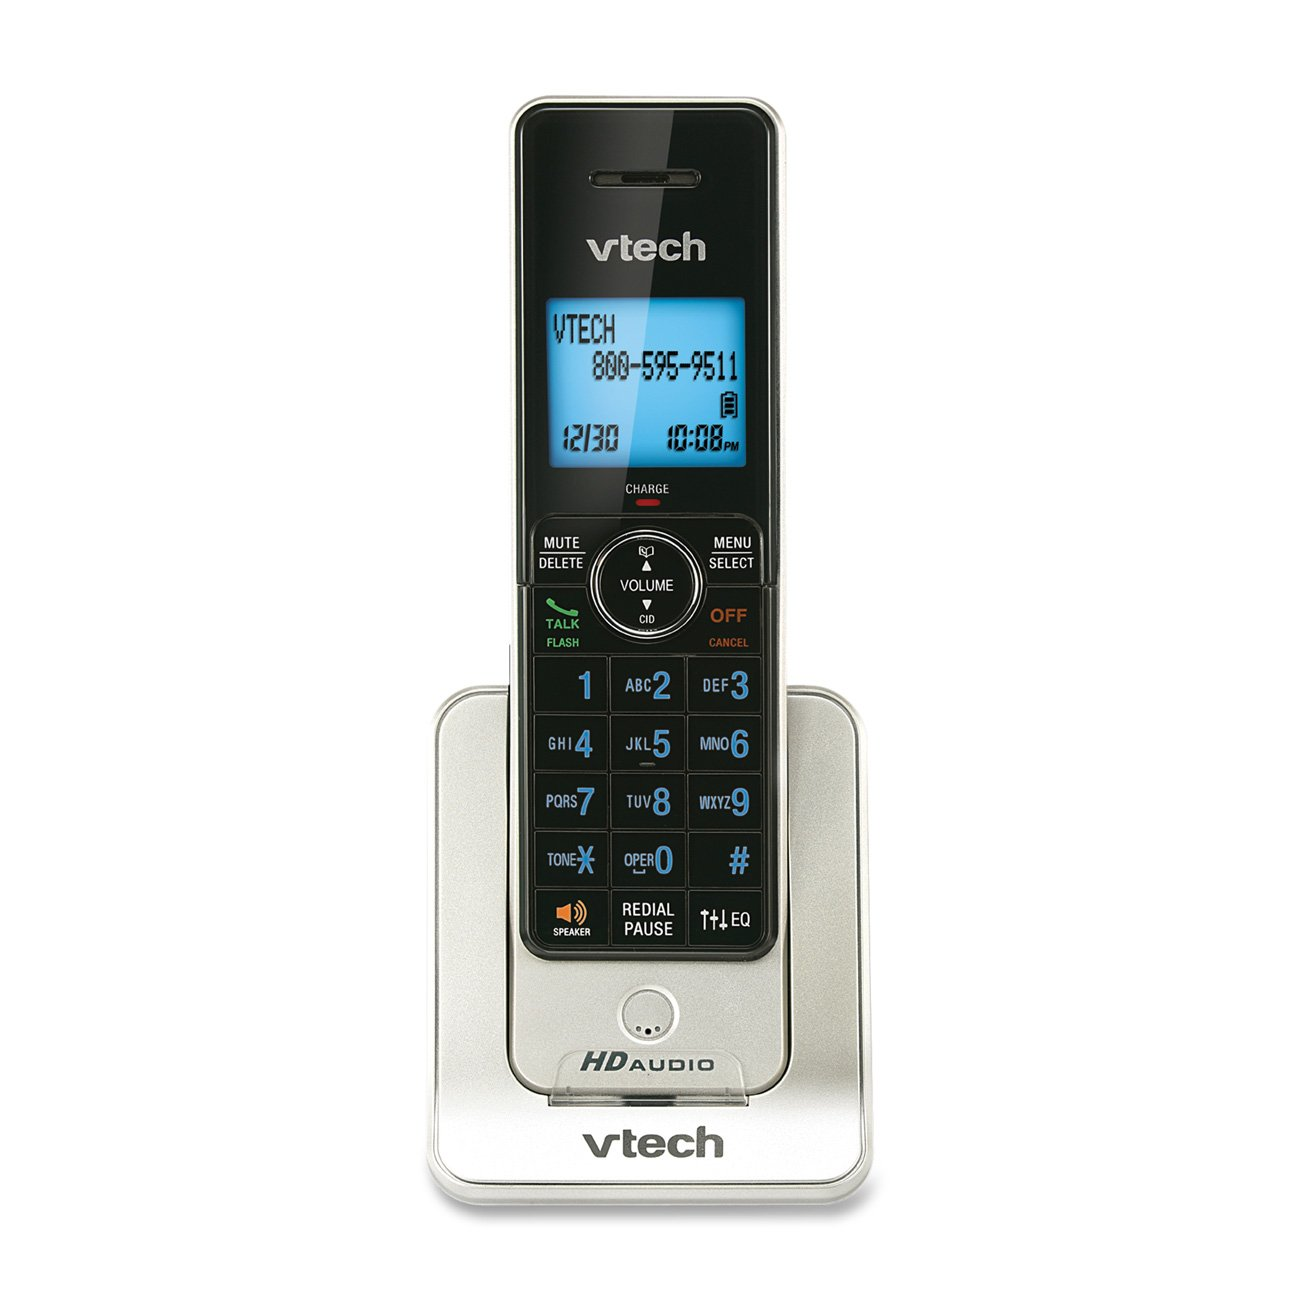 VTech LS6405 Accessory Handset for VTech LS6425 and LS6475, Silver